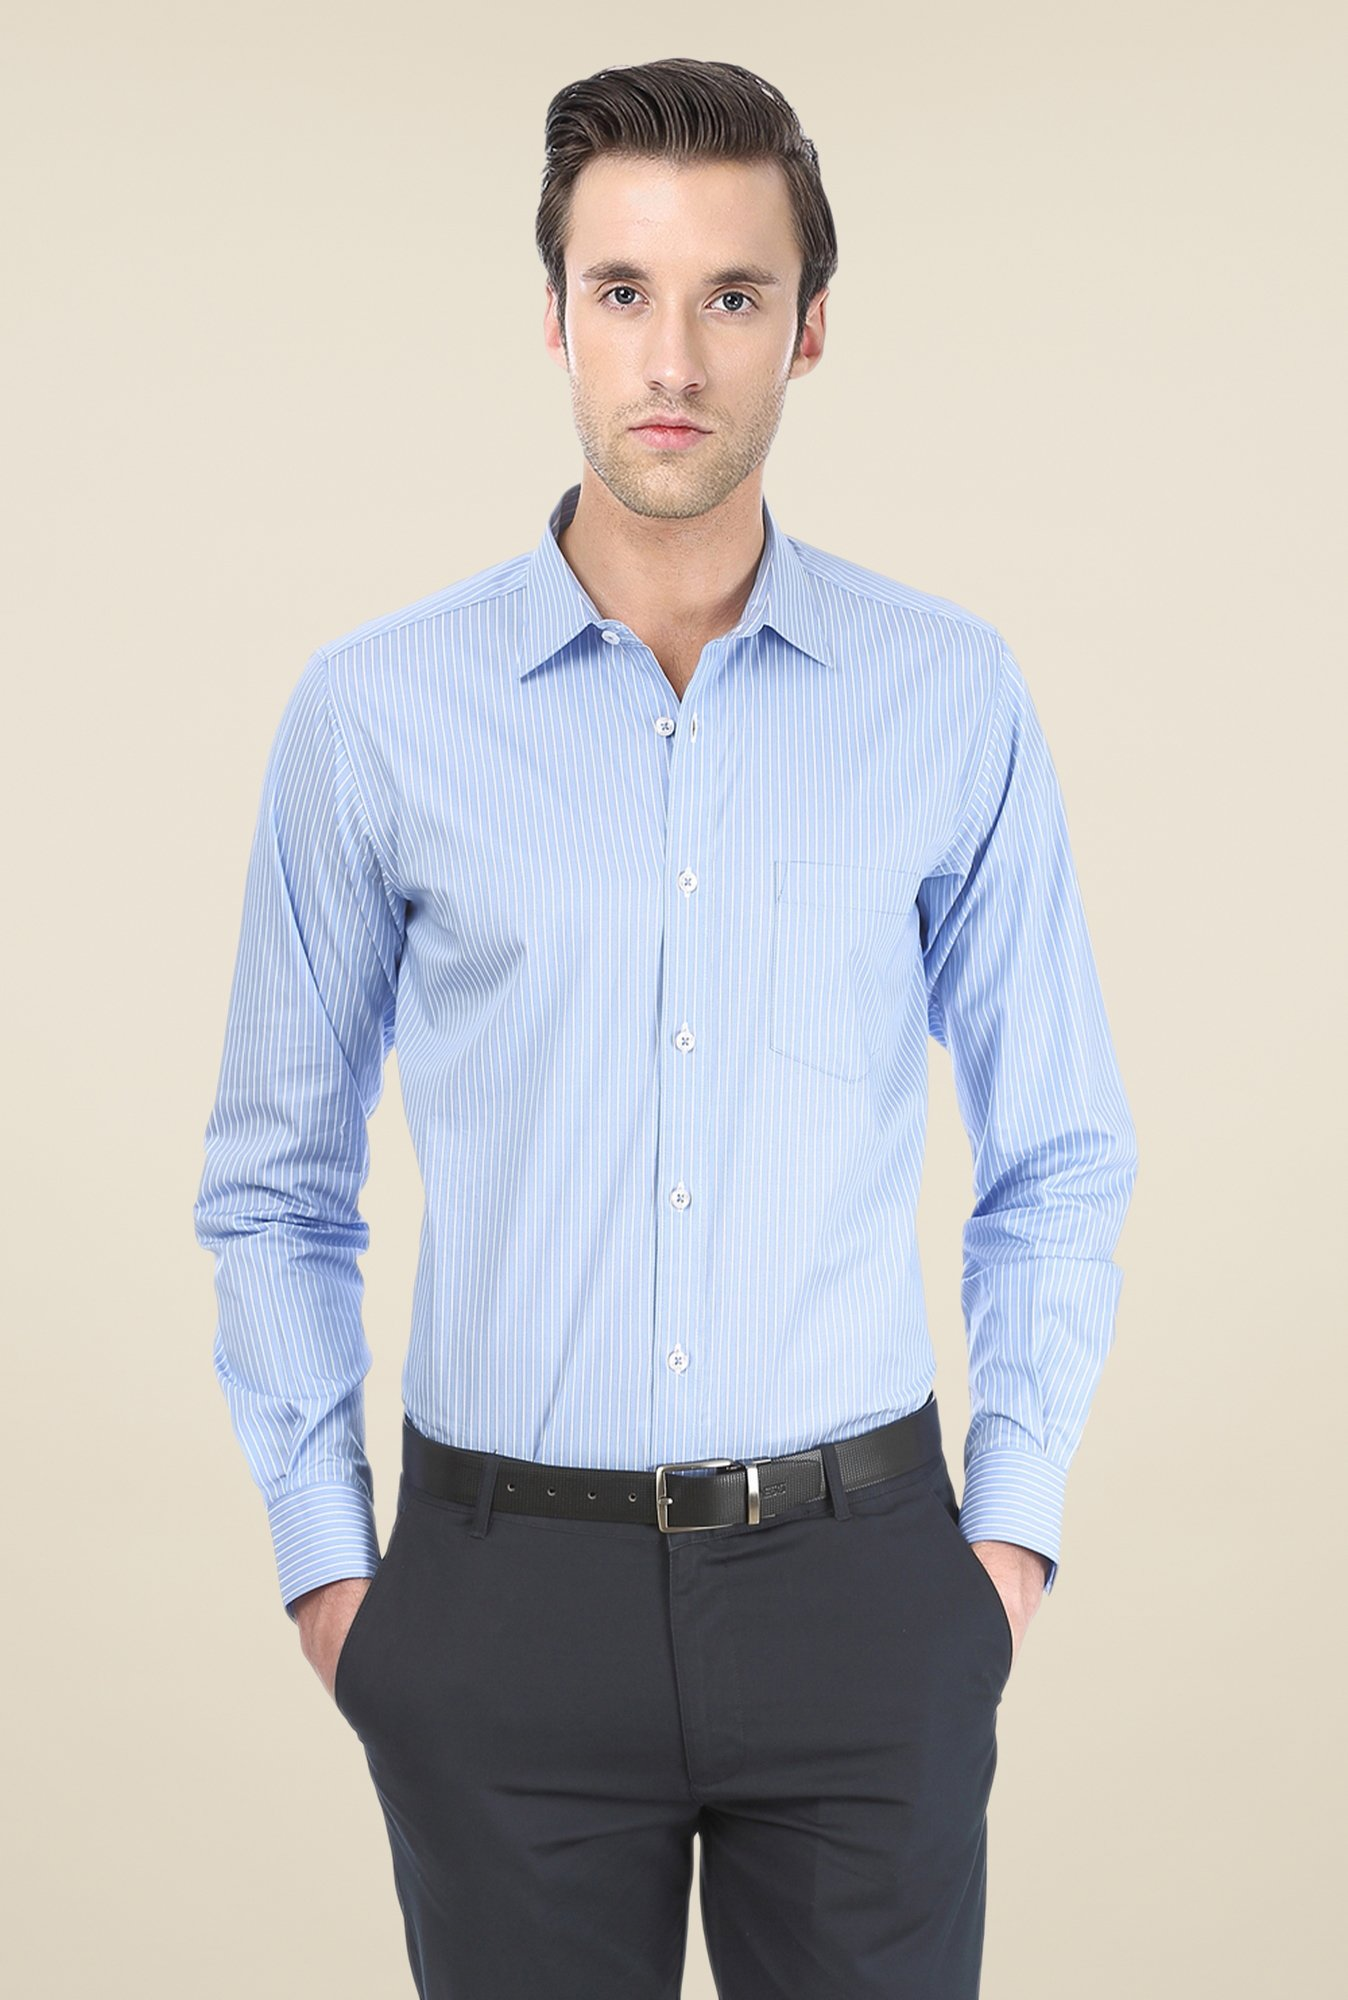 Basics Blue Pin Striped Shirt